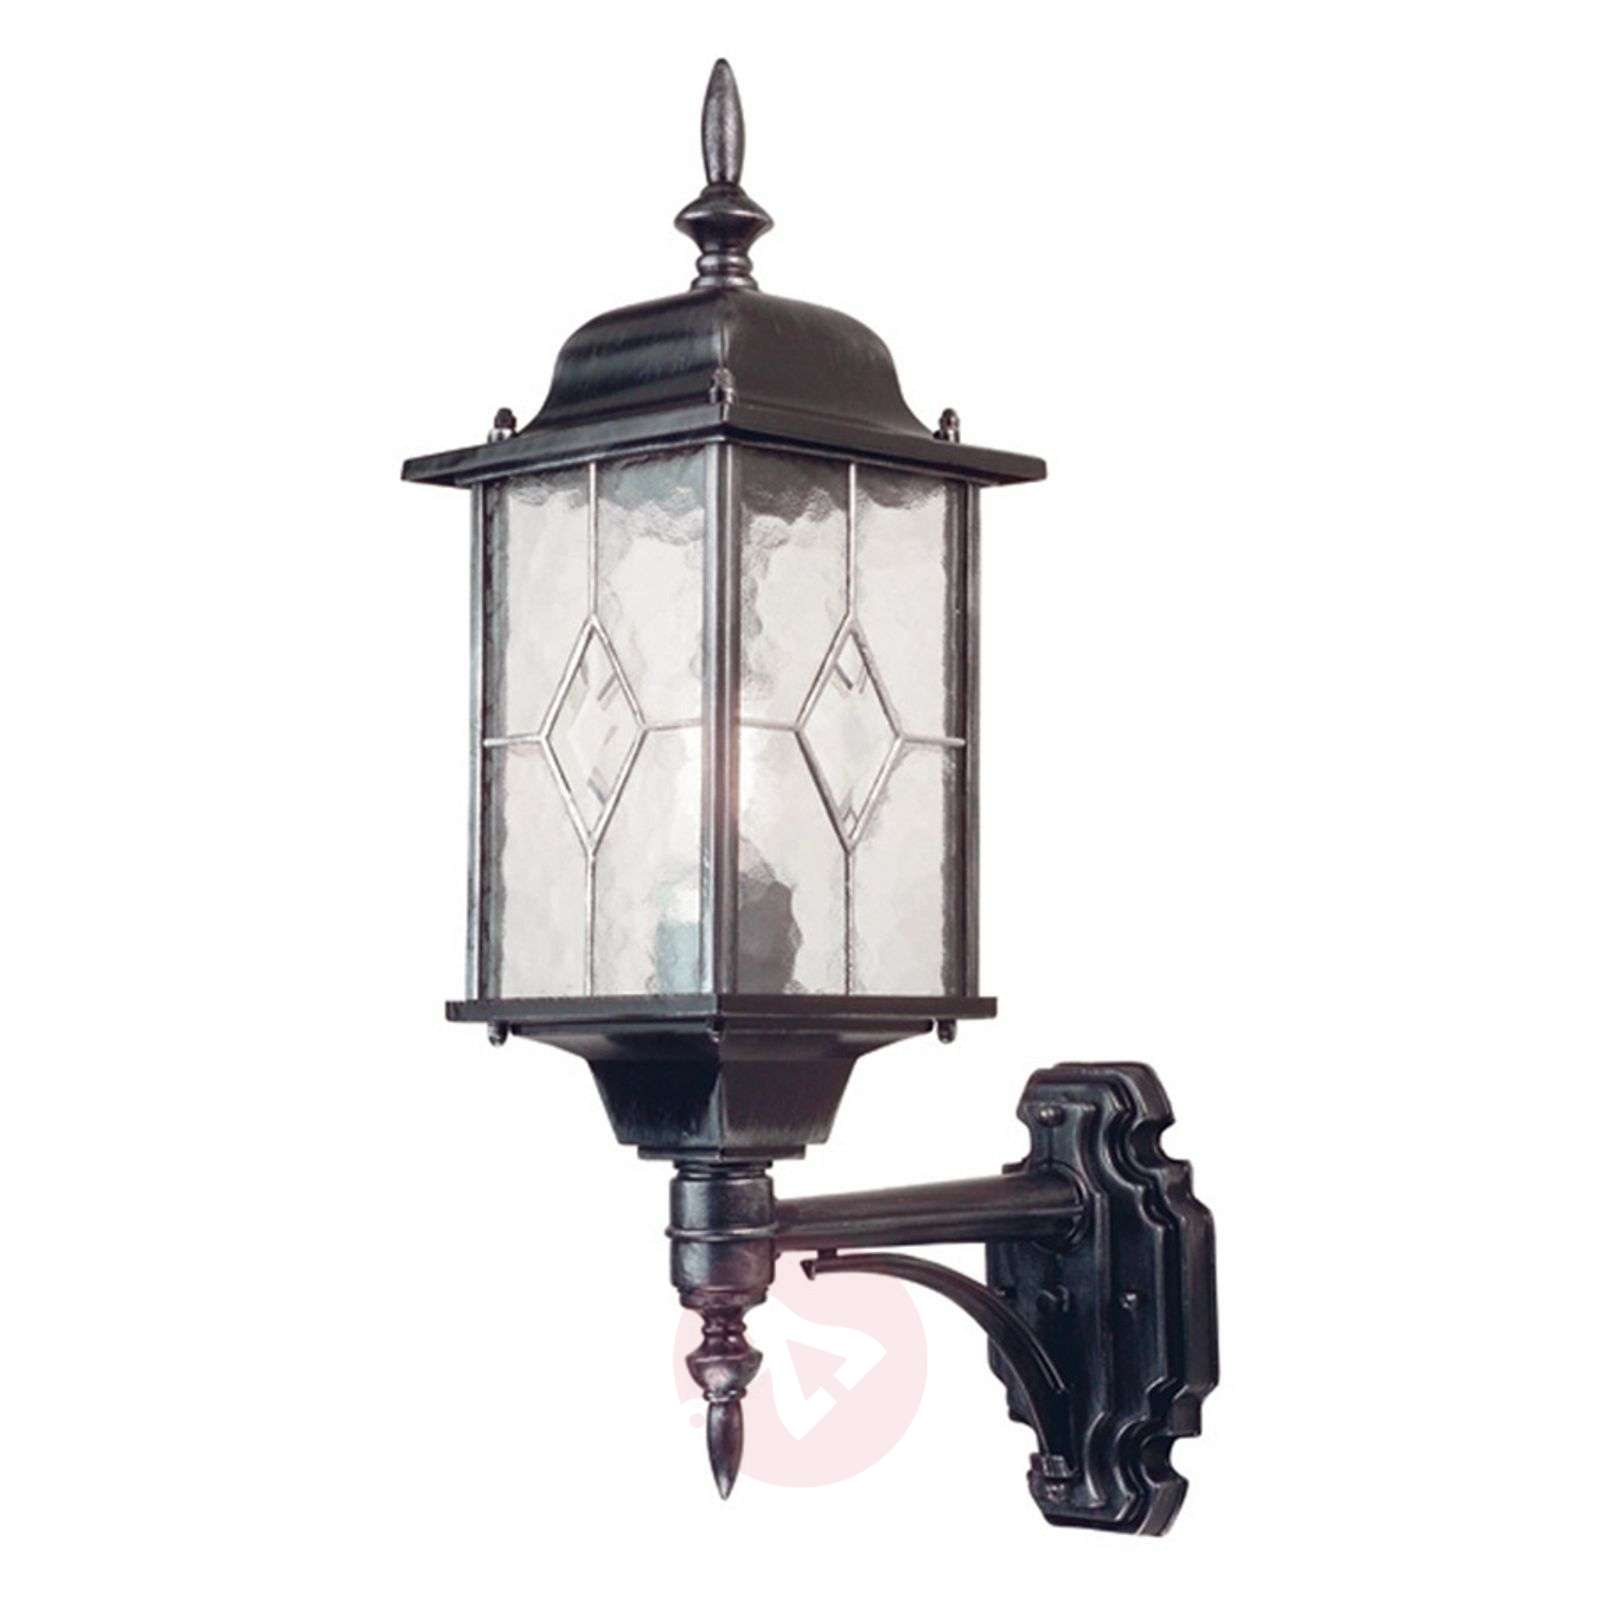 Wexford WX1 outdoor wall light without sensor-3048208-01